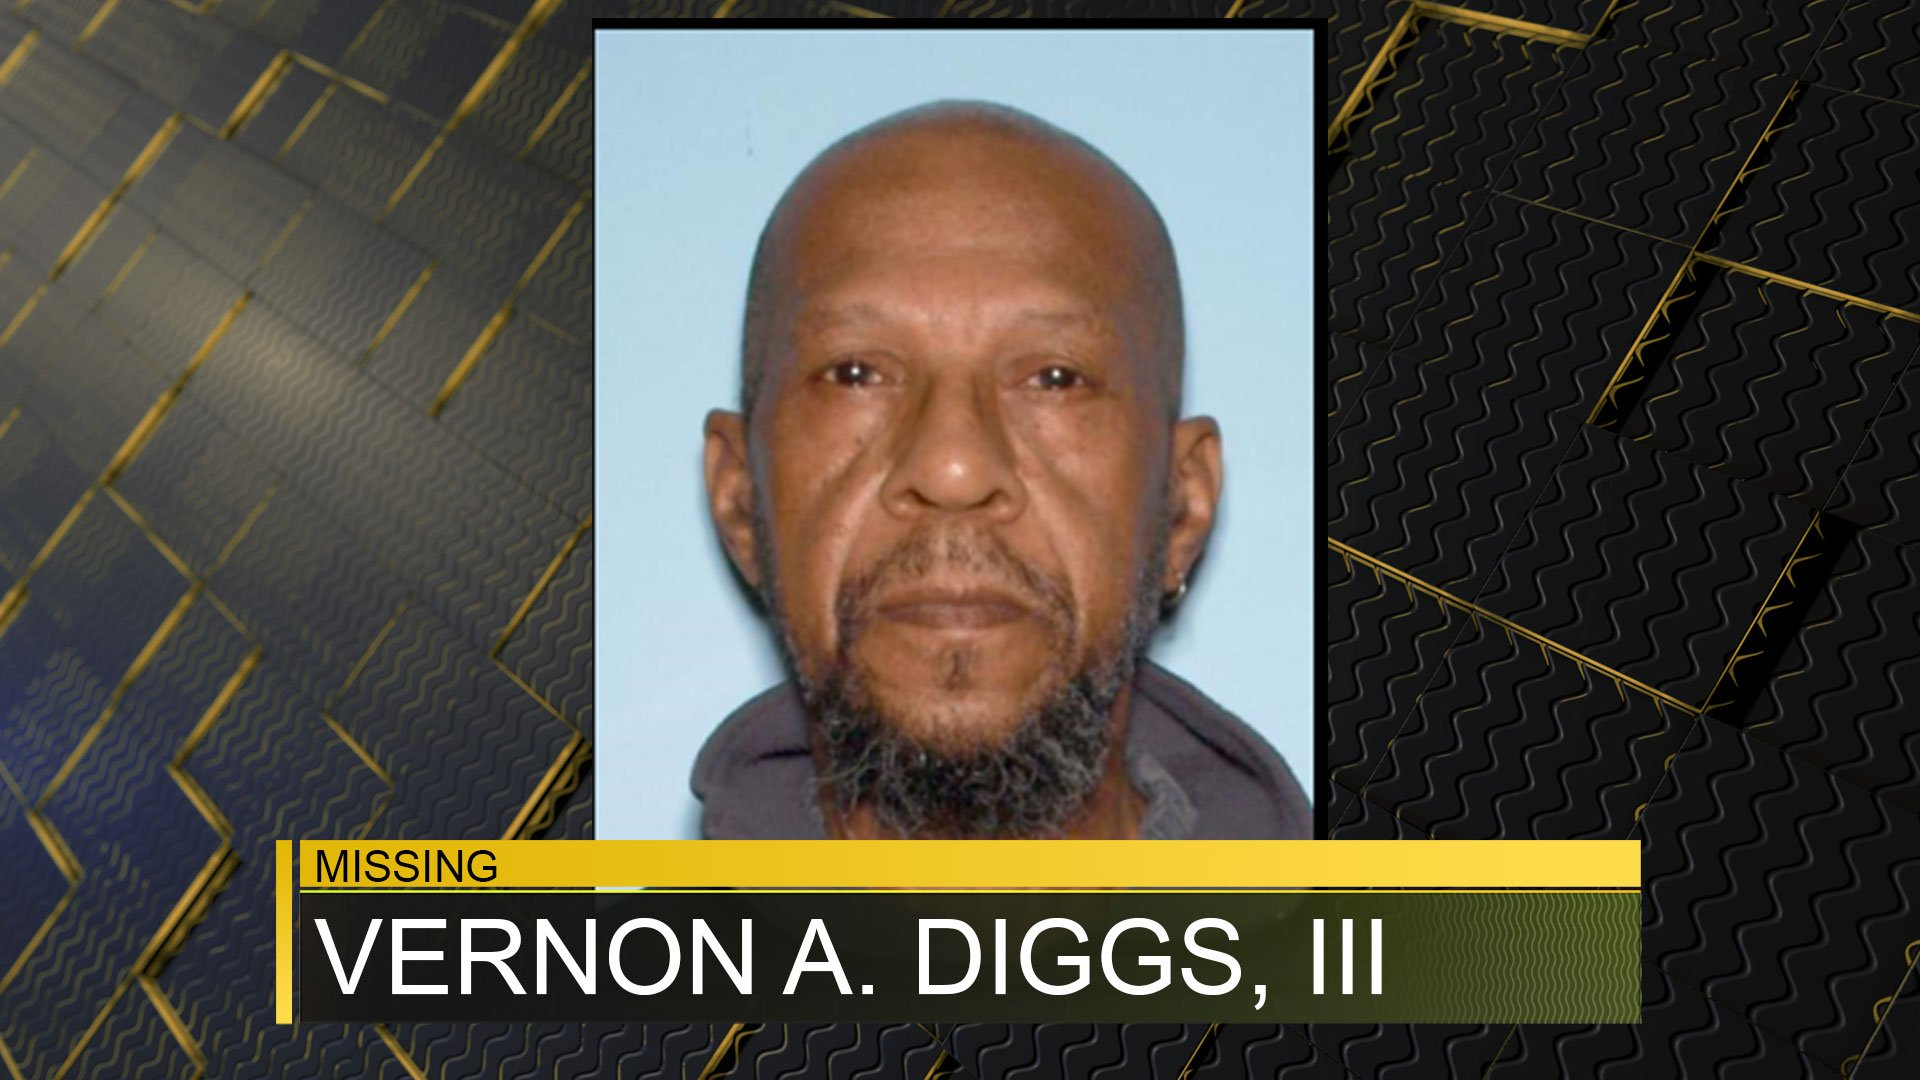 Vernon A. Diggs, III (Richmond County Sheriff's Office)